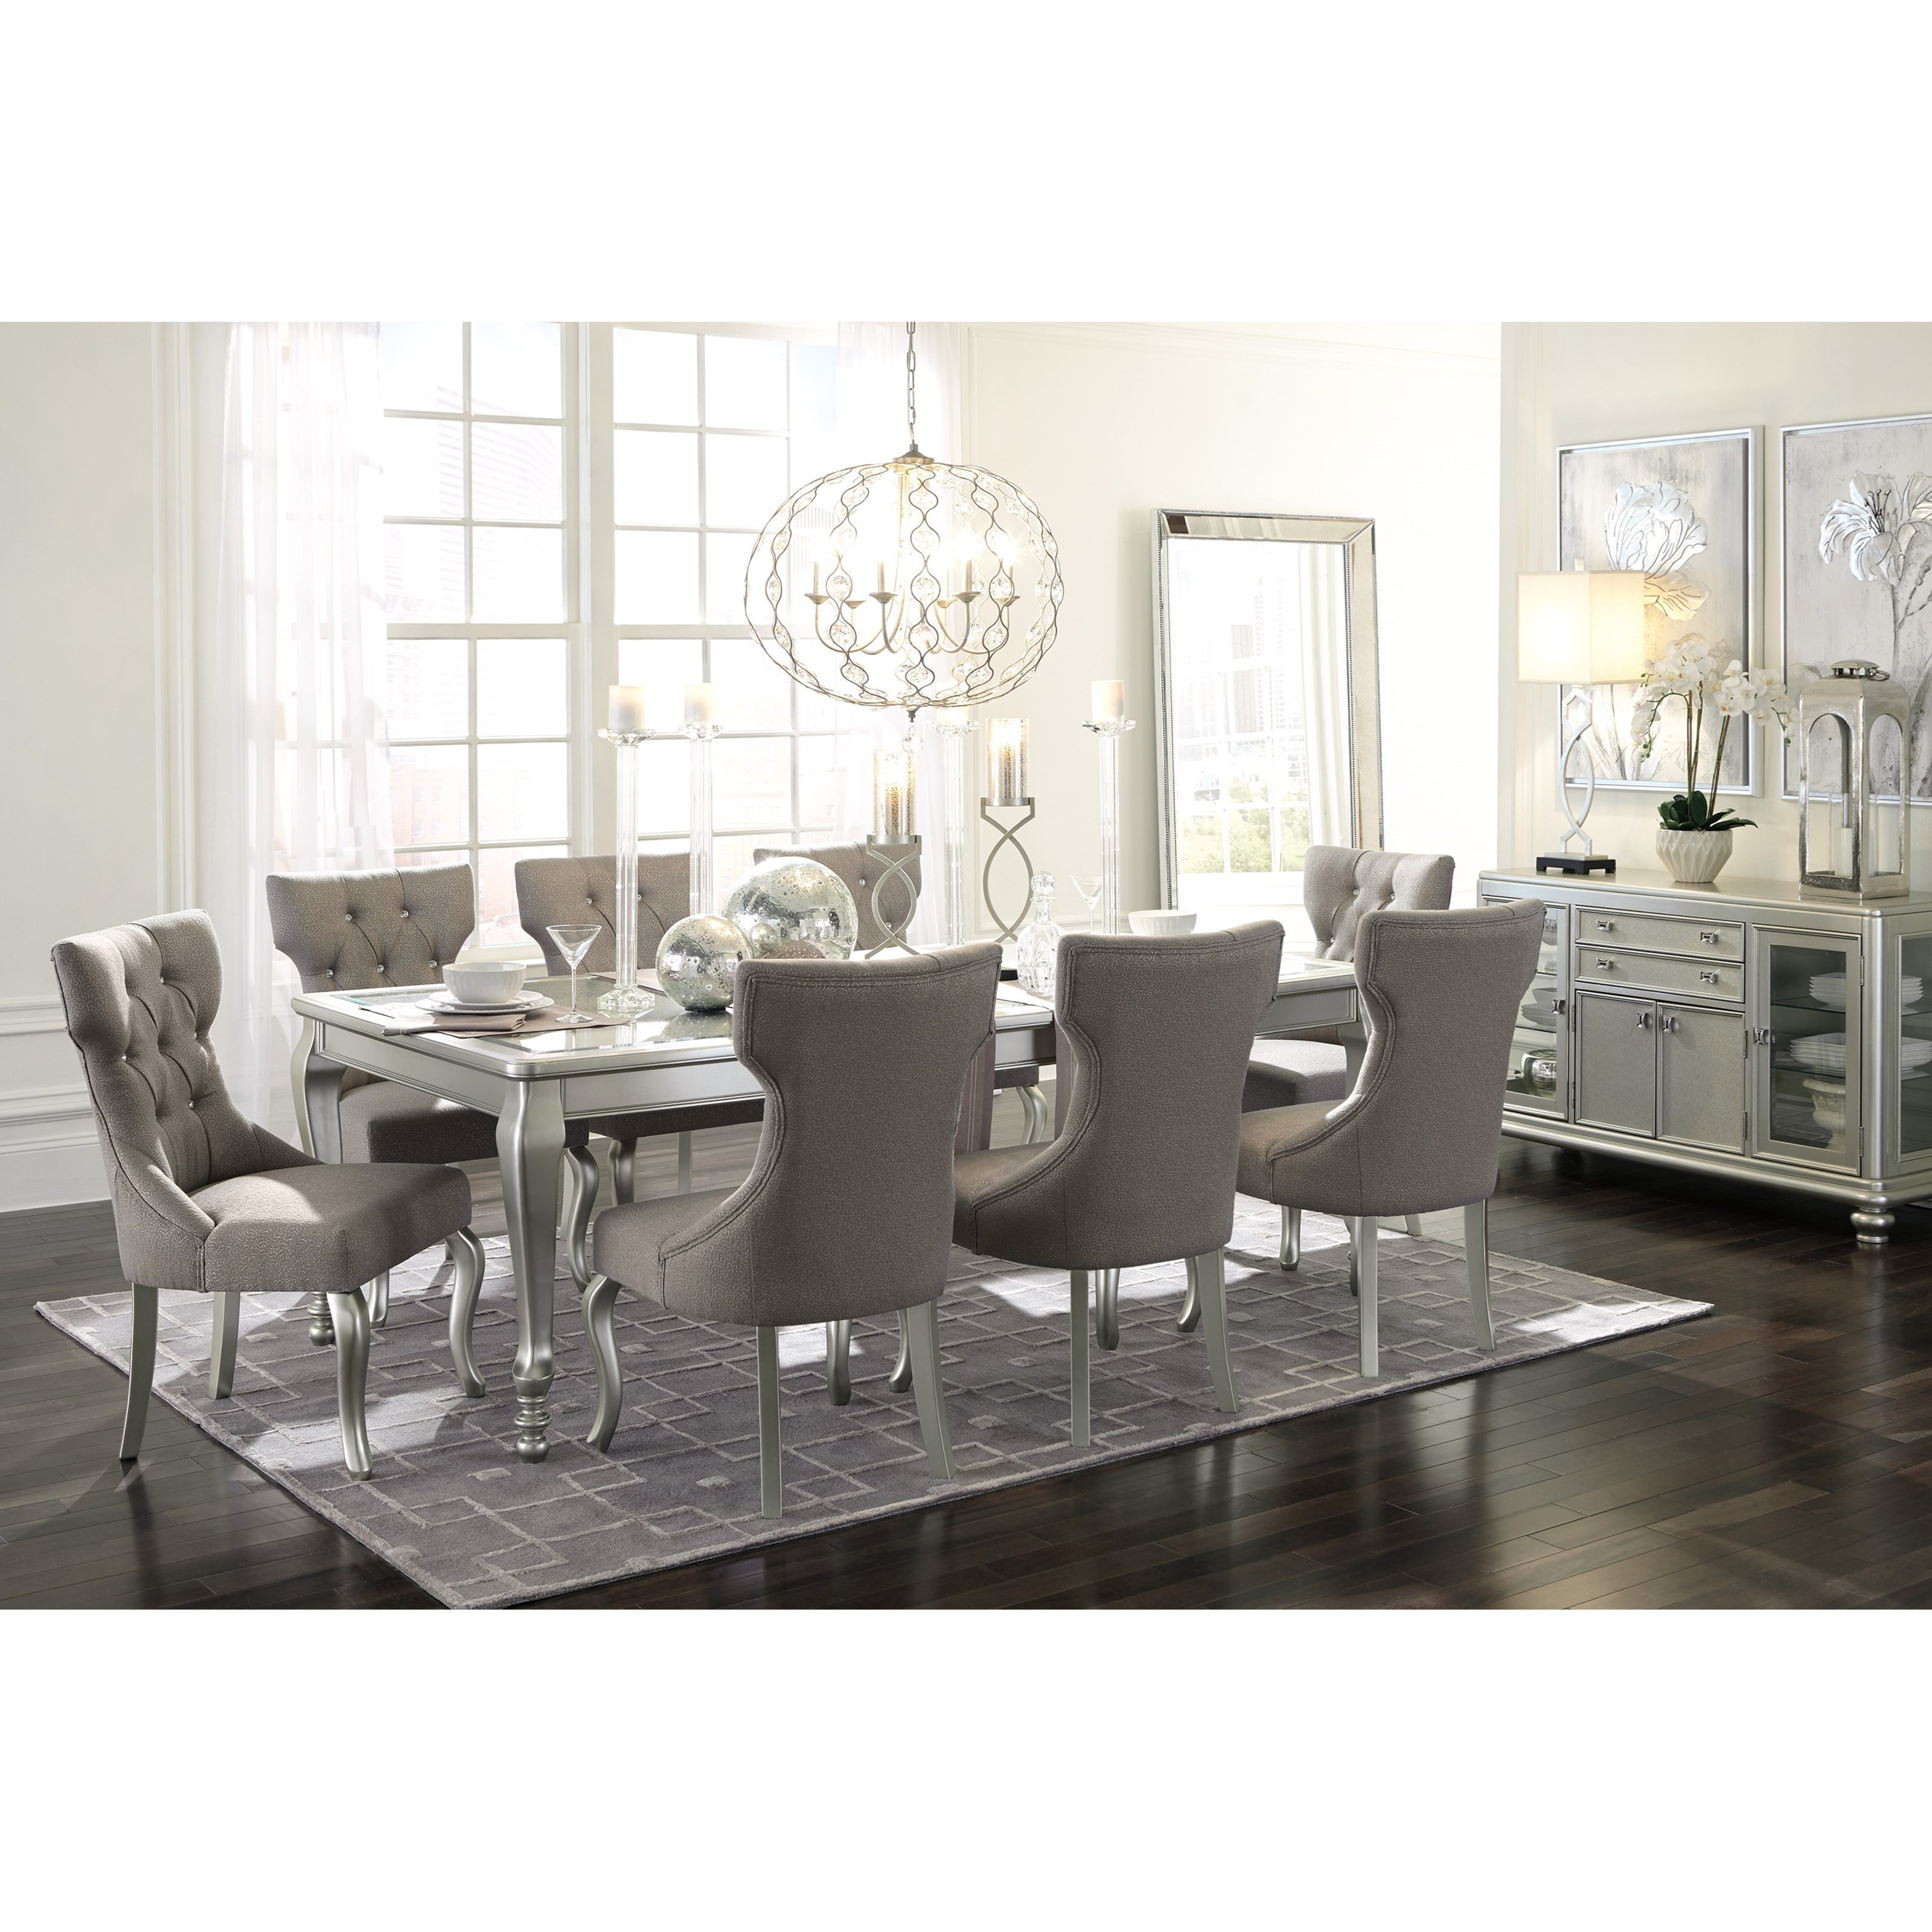 Signature Design By Ashley Furniture Hayley 7 Piece Dining: Coralayne 9-Piece Rectangular Dining Room Extension Table